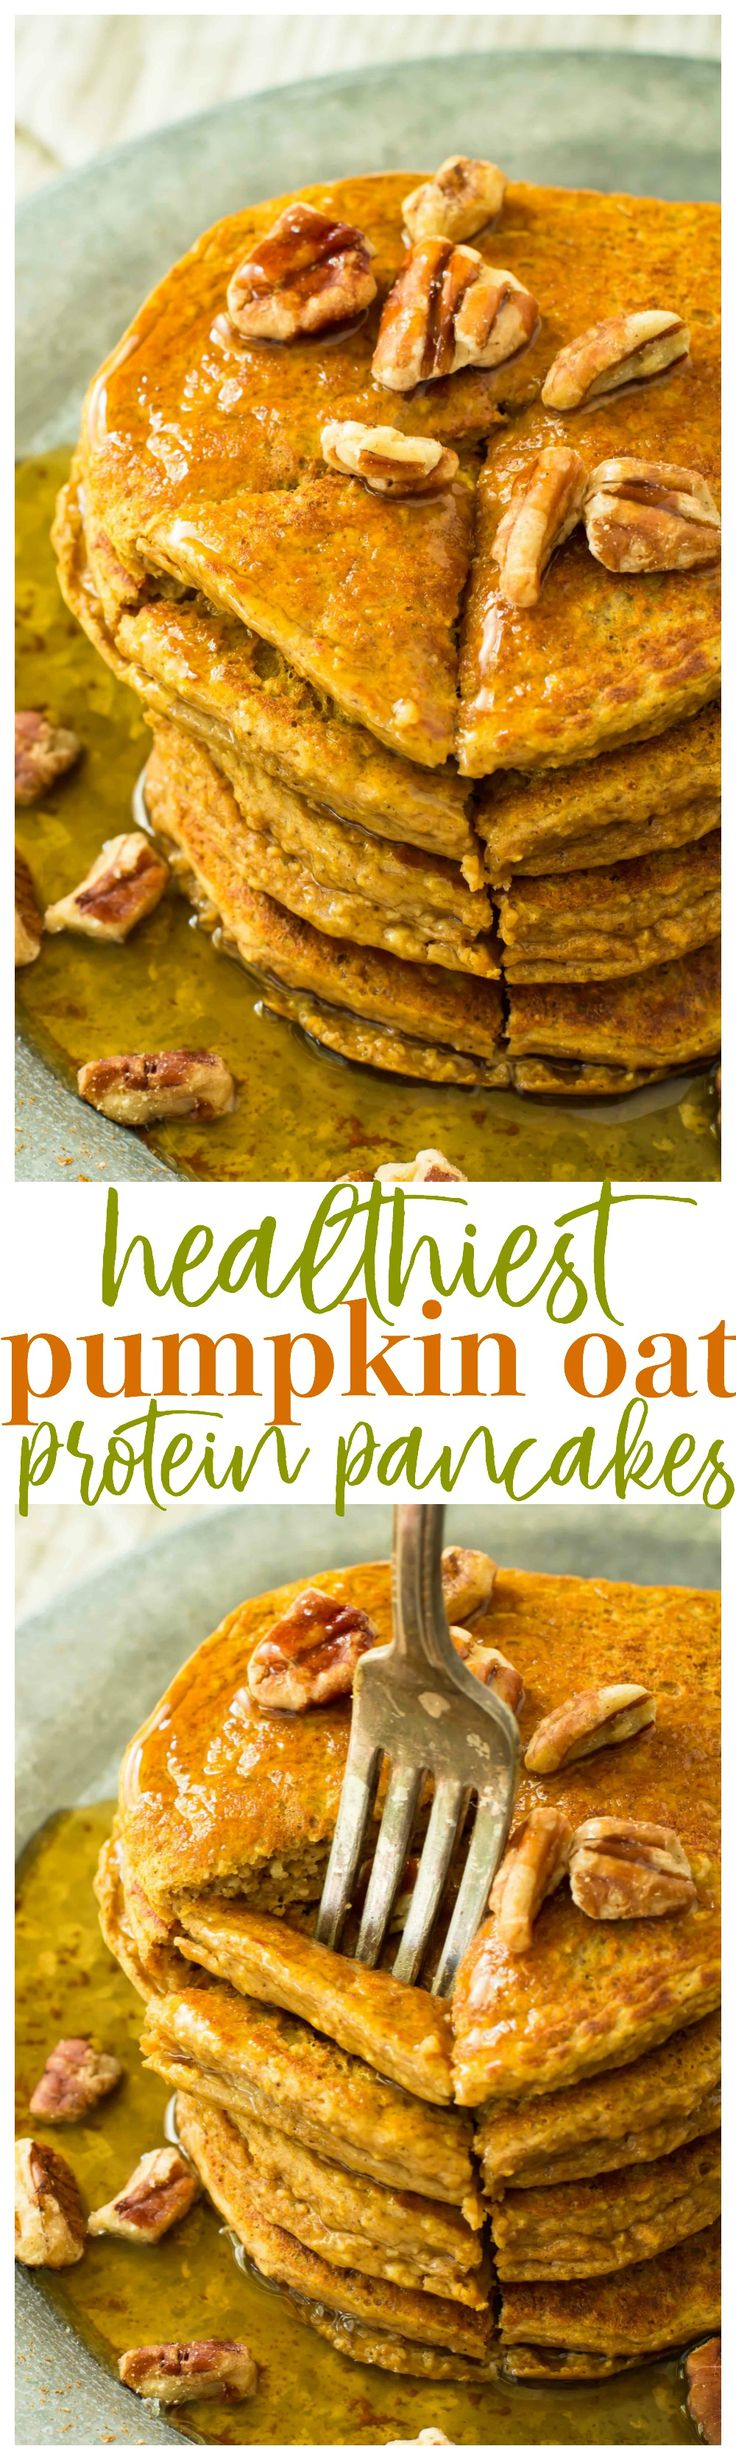 Healthiest Pumpkin Oat Protein Pancakes - tender, fluffy pancakes that can be whipped up in the blender. Healthy, simple and perfect for chilly fall mornings!